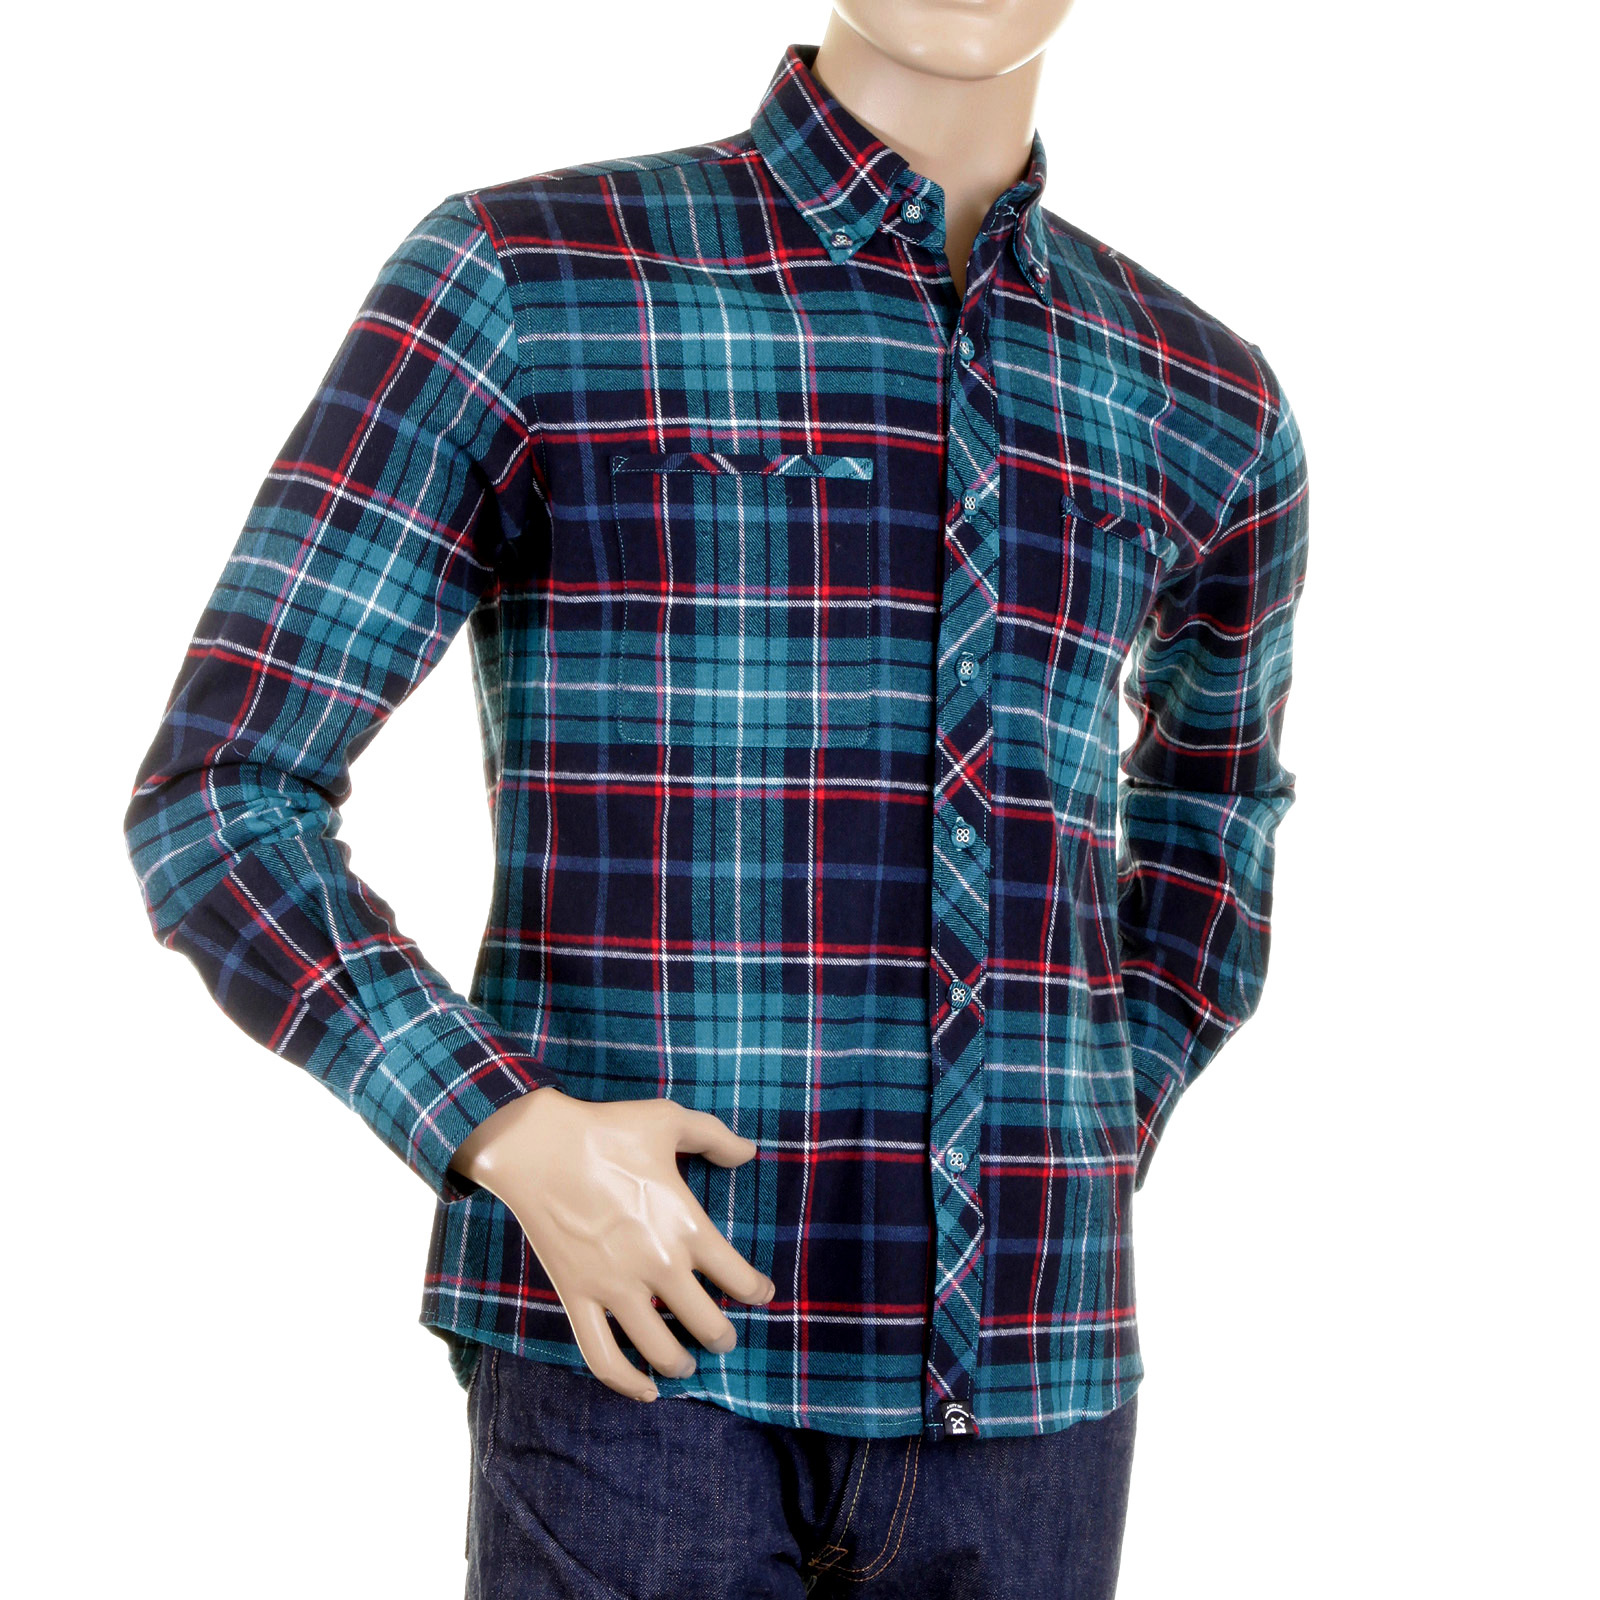 mens checkered shirt in turquoise blue by red monkey